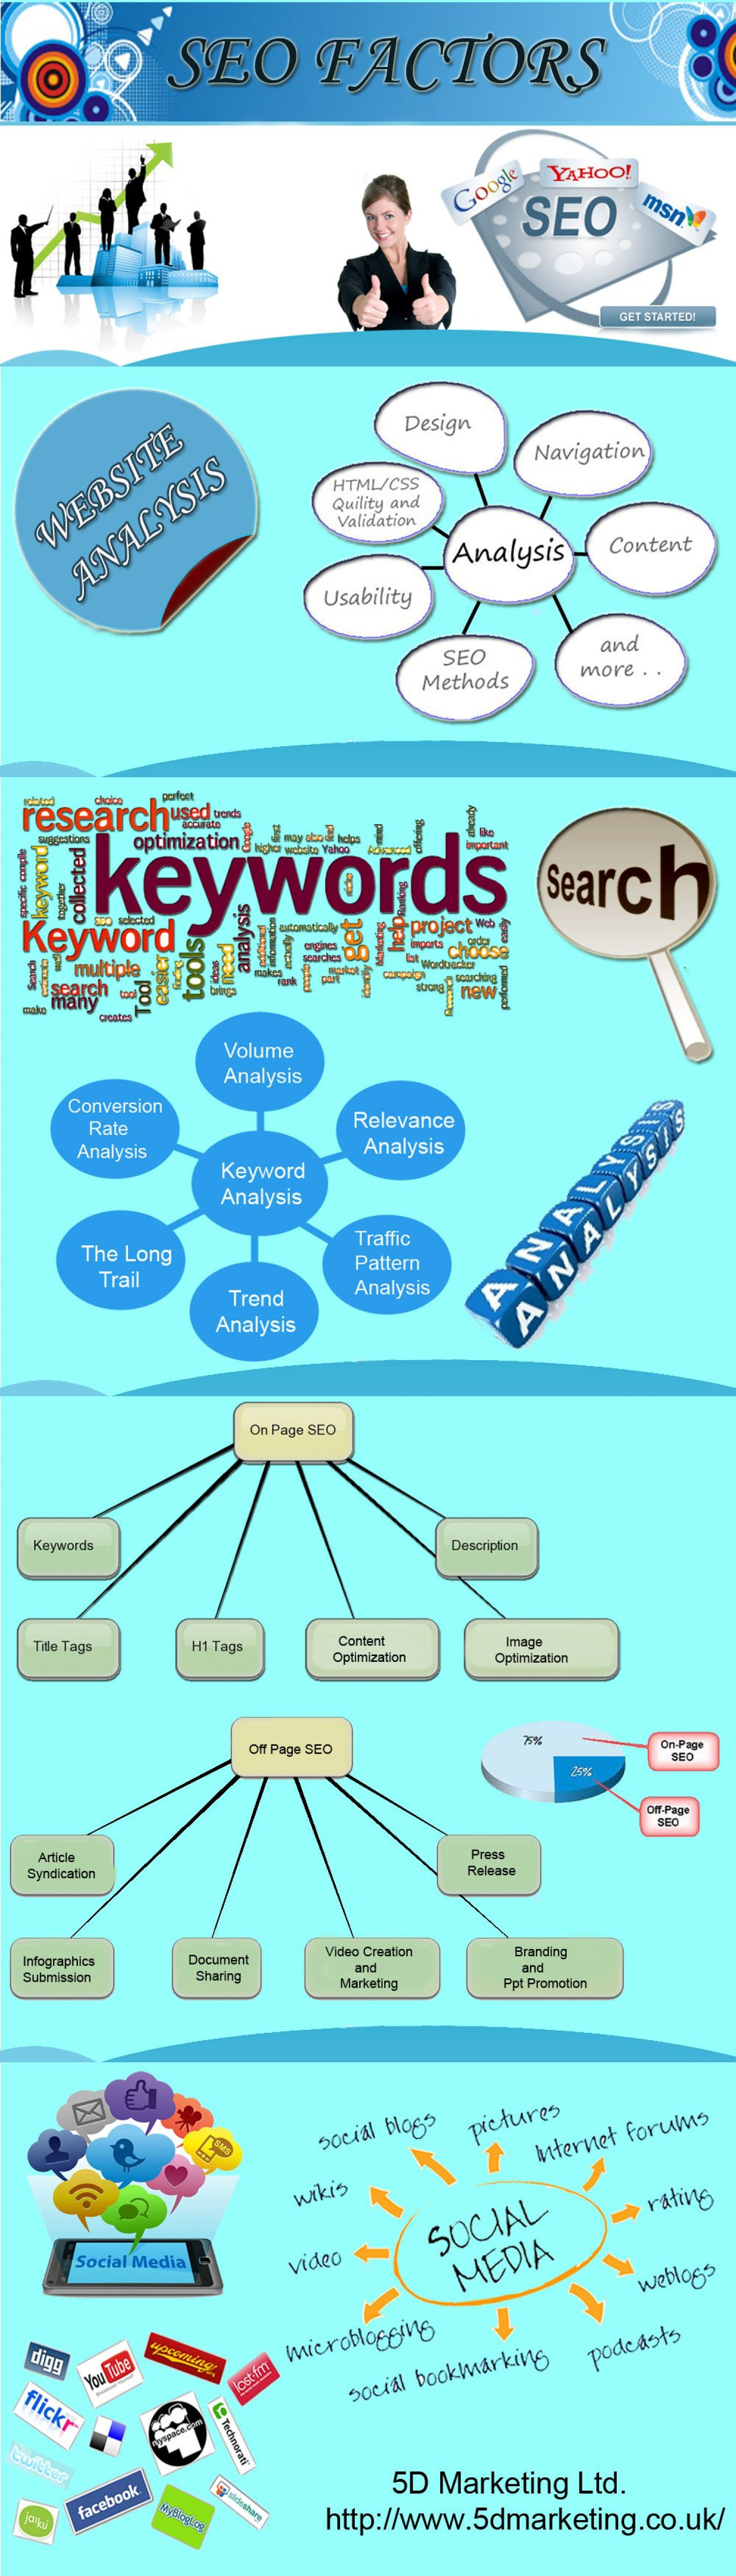 SEO London Infographic